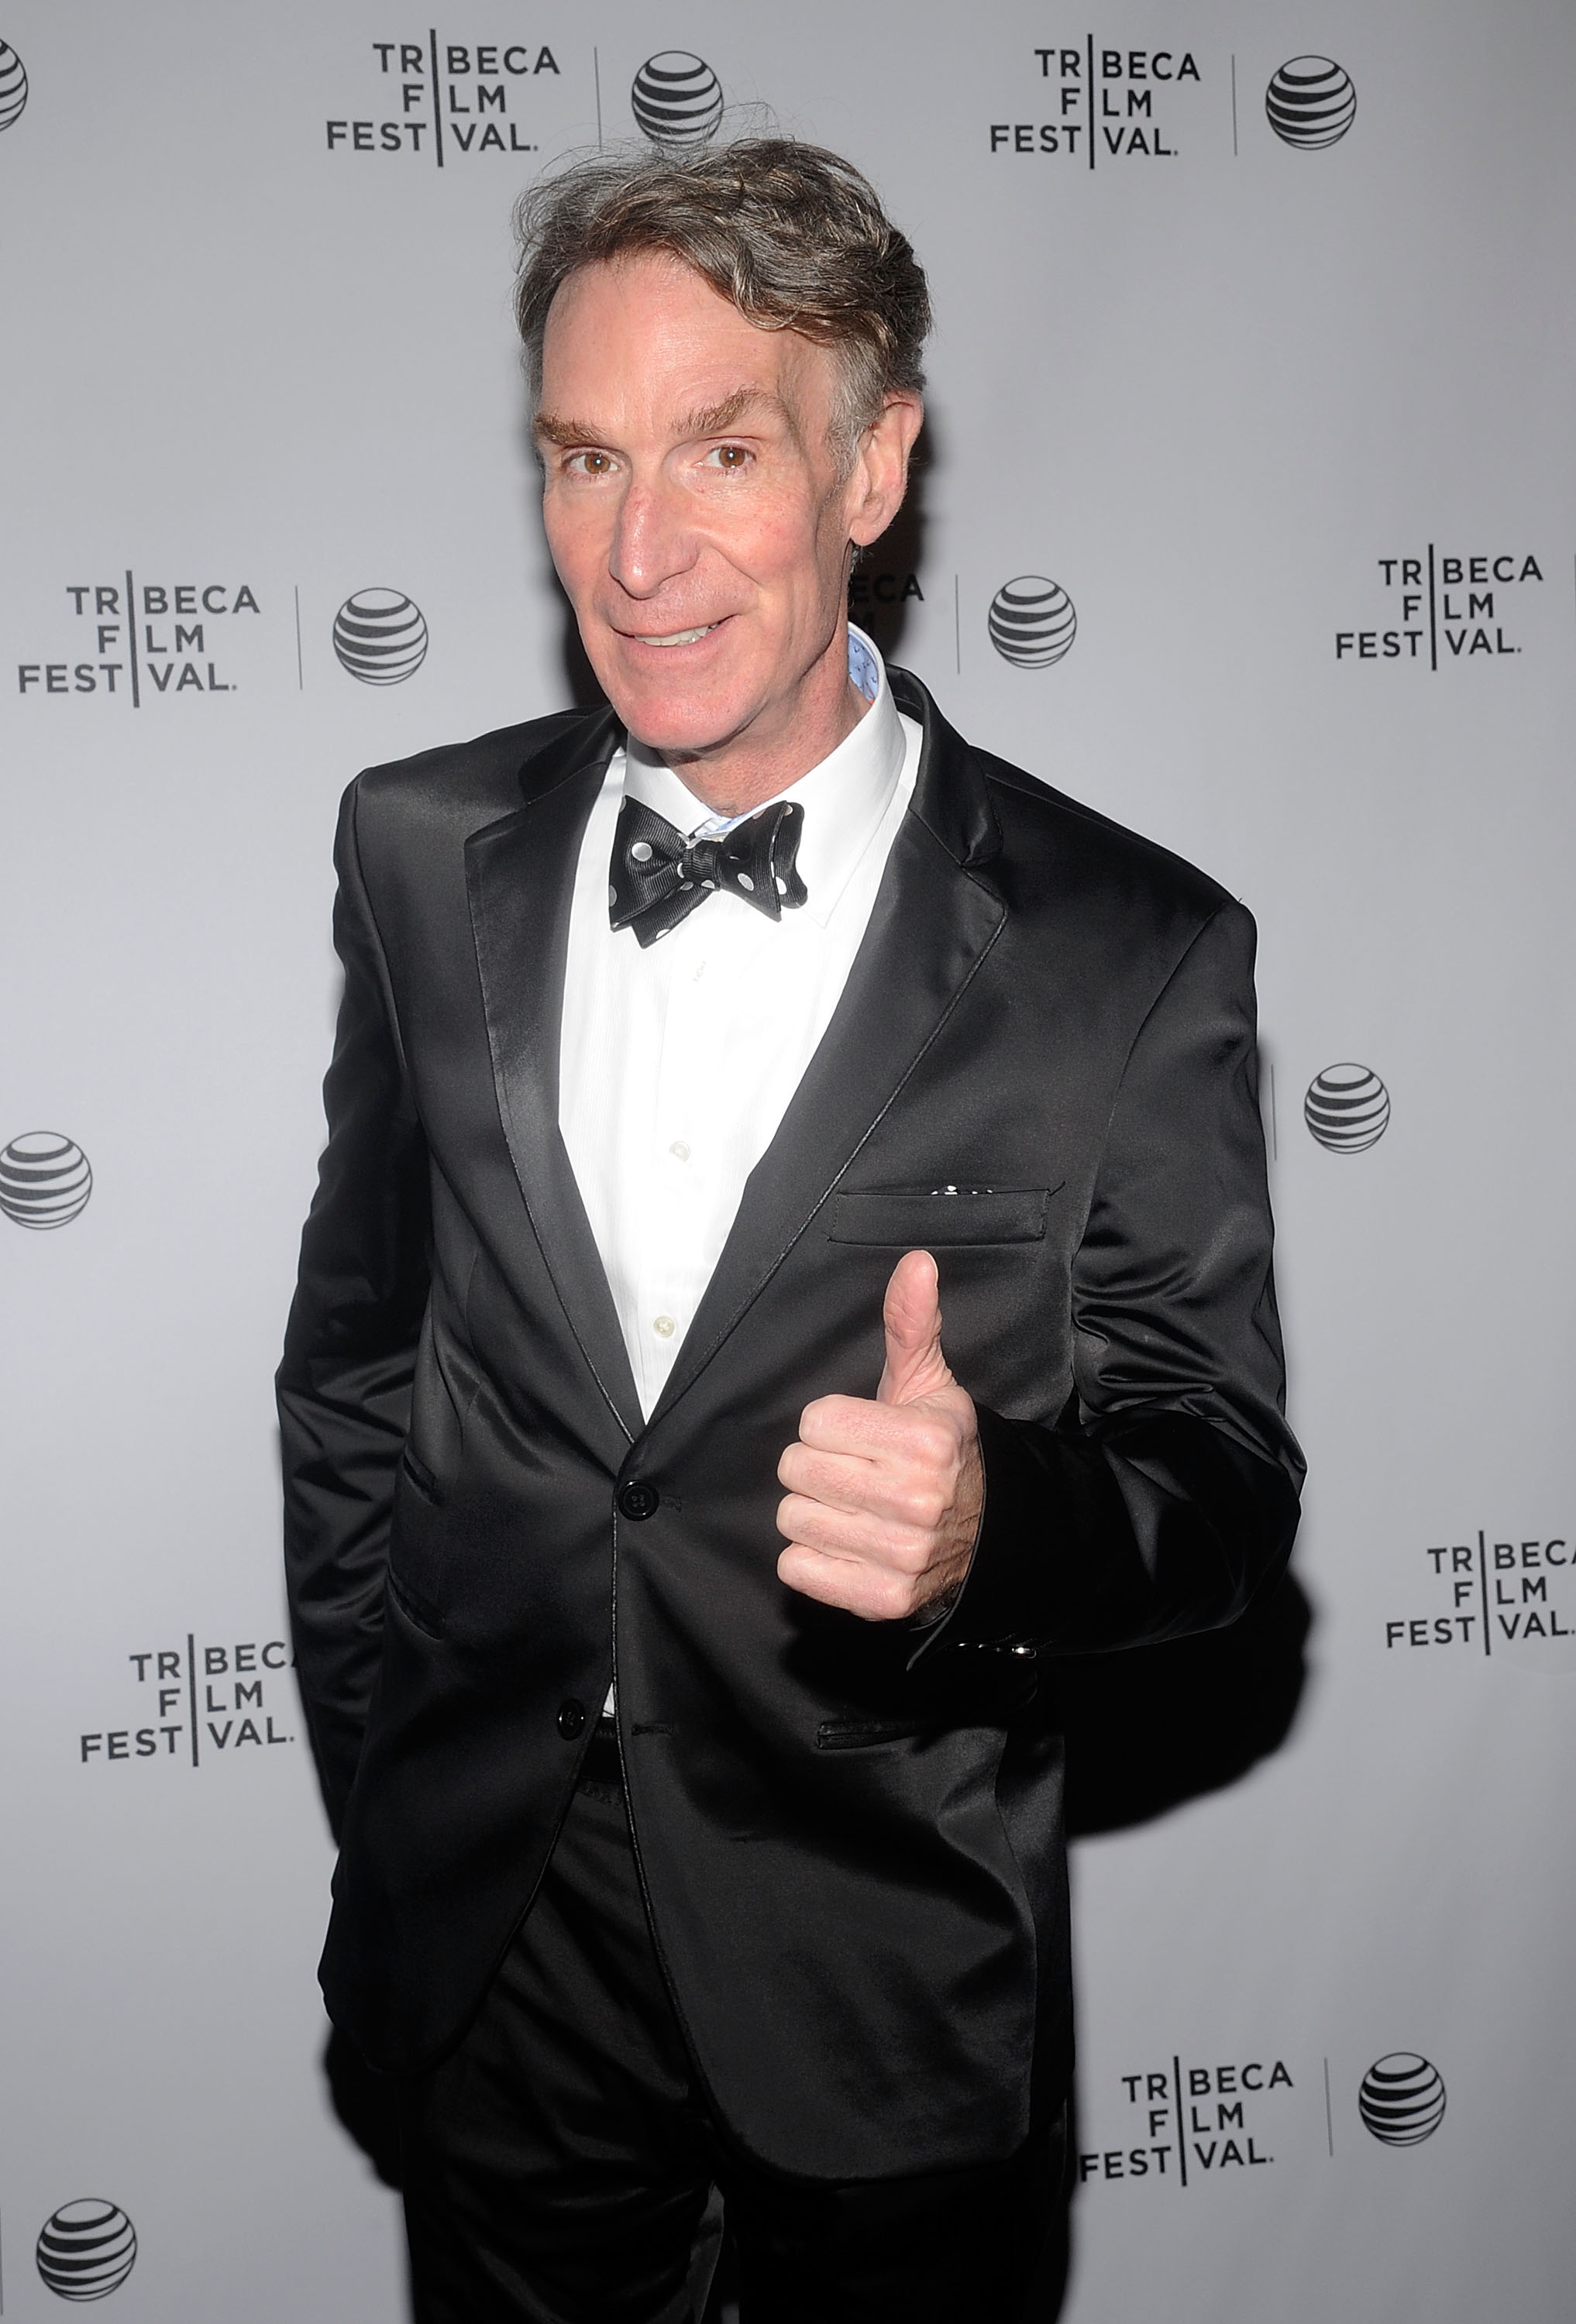 American science educator Bill Nye attends  An Honest Liar  Premiere during the 2014 Tribeca Film Festival at SVA Theater on April 18, 2014 in New York City.